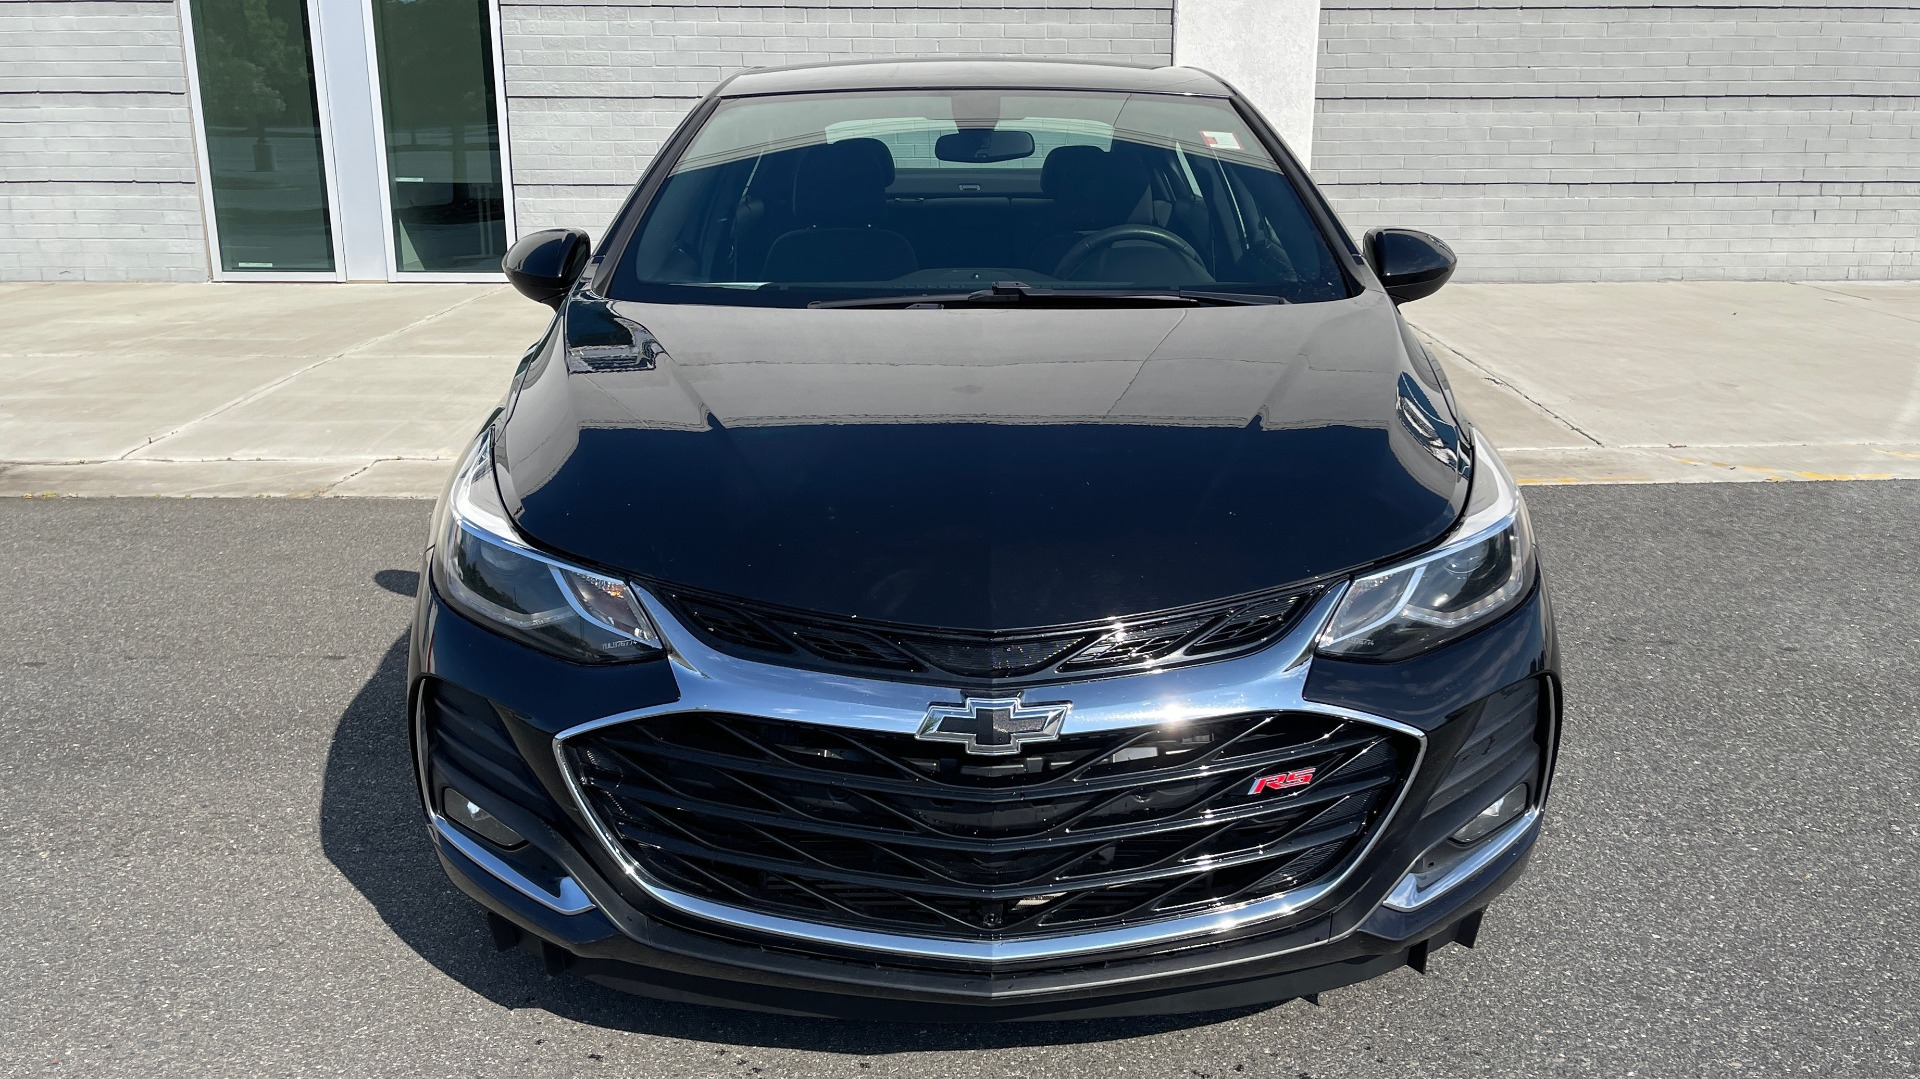 Used 2019 Chevrolet CRUZE LT / 1.4L TURBO / 6-SPD AUTO / AIR CONDITIONING / REARVIEW for sale $18,495 at Formula Imports in Charlotte NC 28227 7